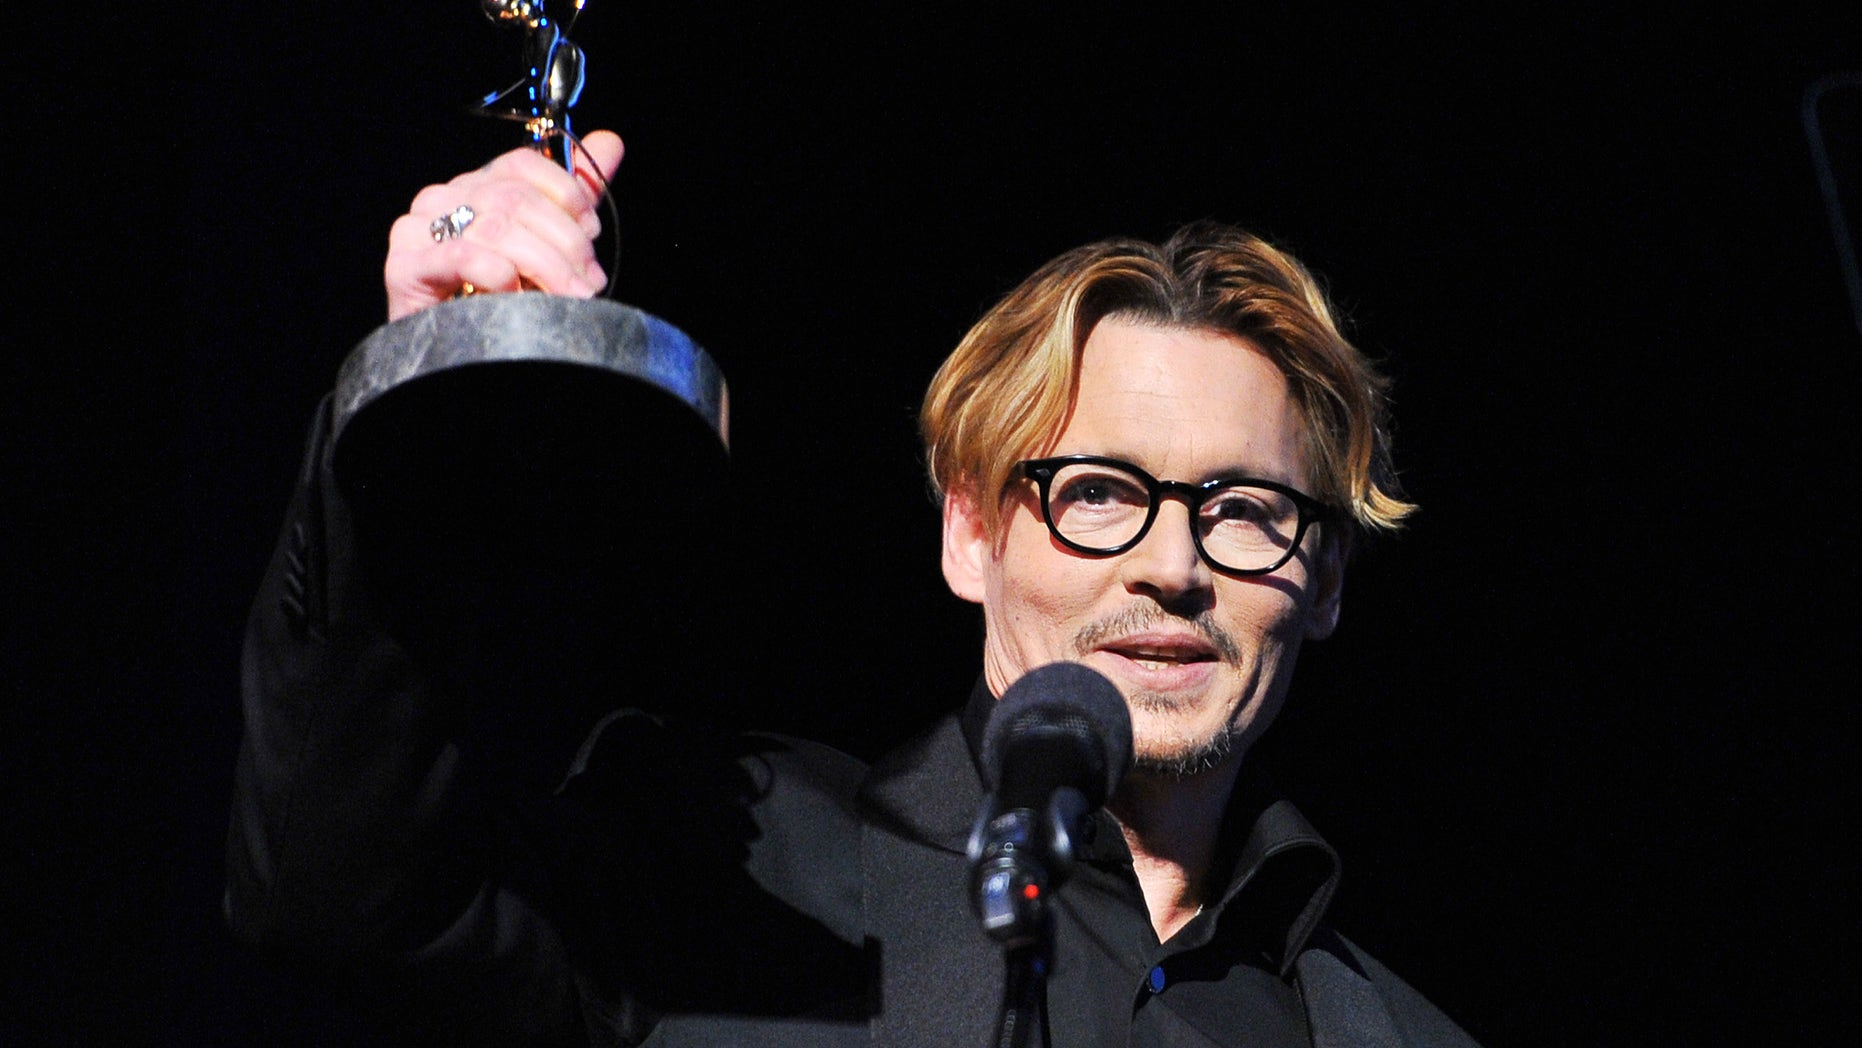 Feb. 15, 2014. Johnny Depp accepts the Distinguished Artisan Award at The Make-Up Artists and Hair Stylists Guild Awards at Paramount Studios in Los Angeles, California.